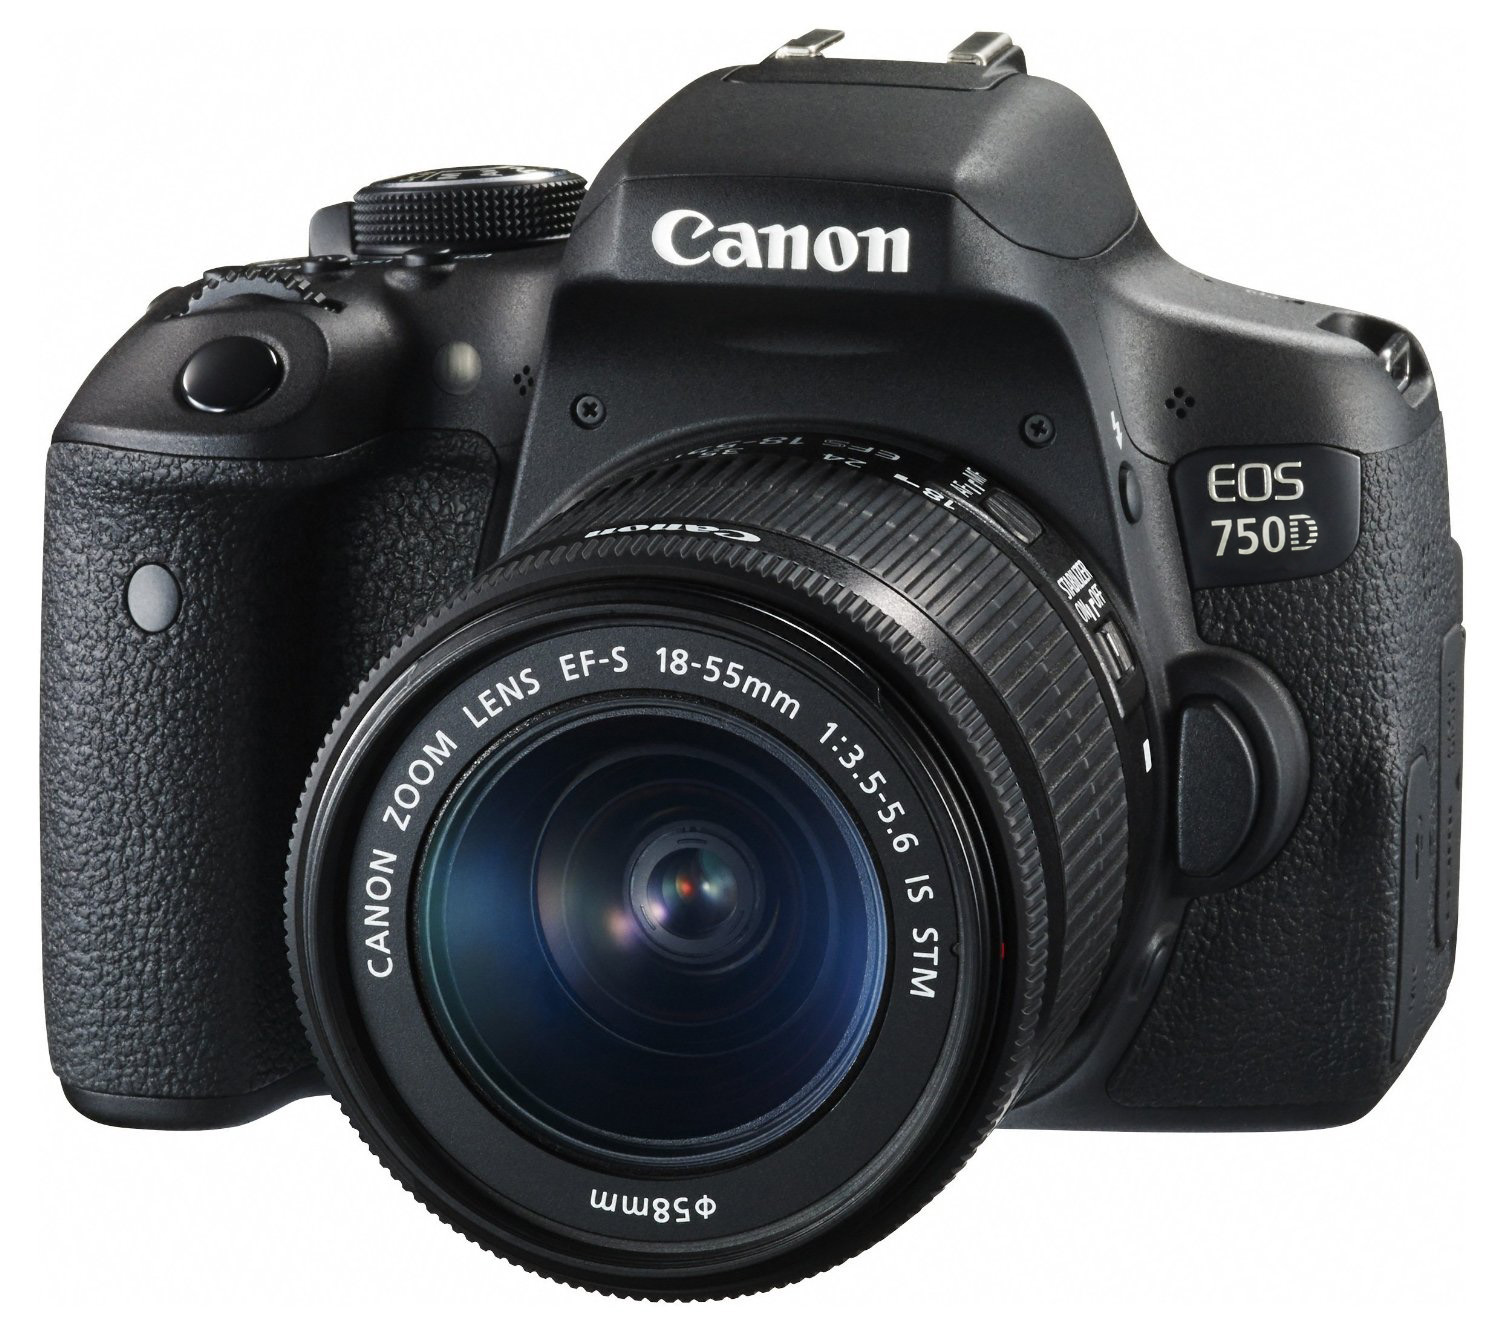 Best camera 2016 - Compact, CSC & SLR picks and buying guide ...